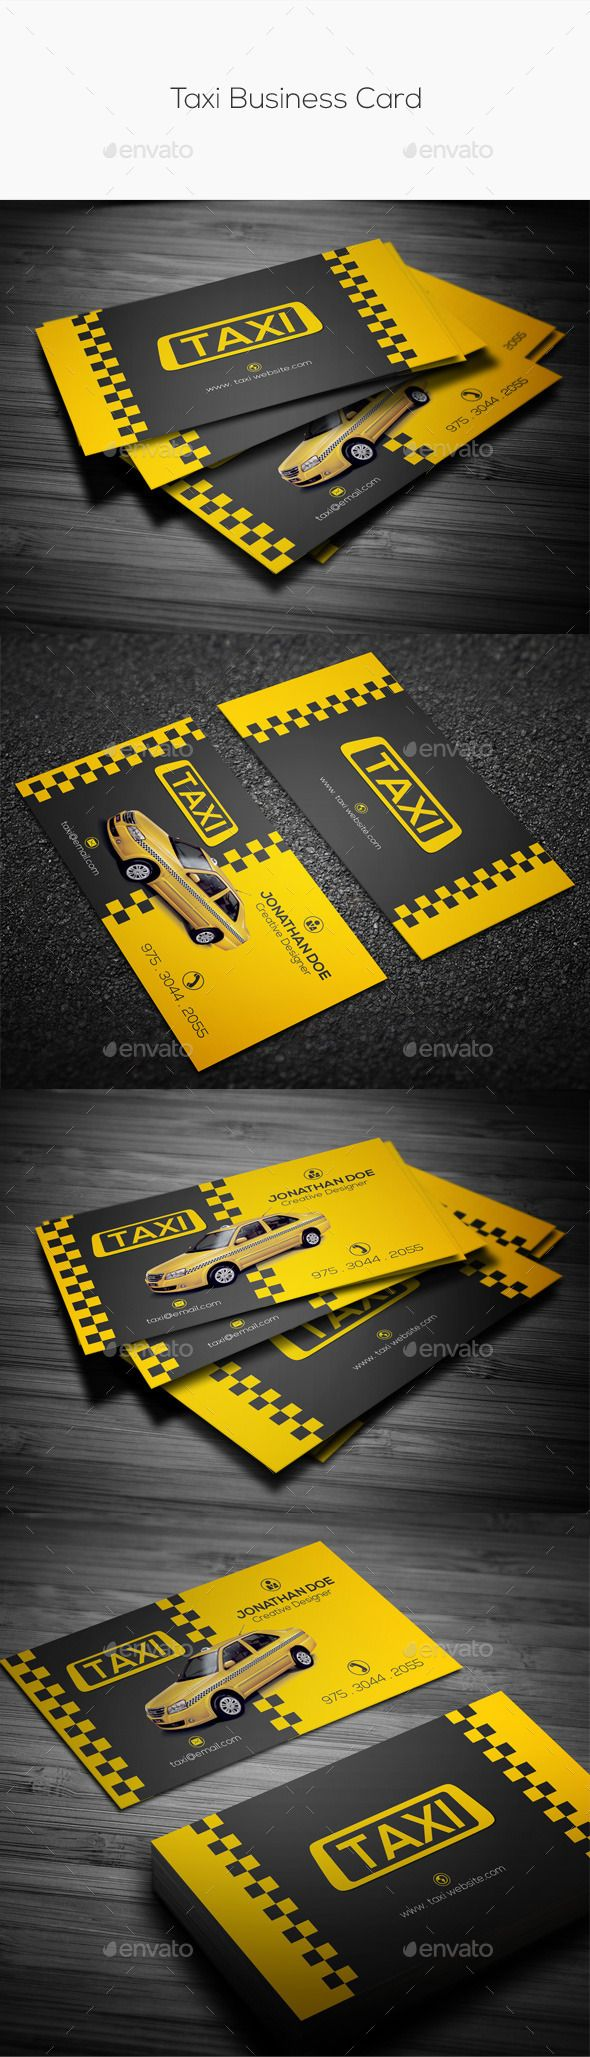 Taxi business card business cards business and card templates taxi business card industry specific business cards magicingreecefo Gallery